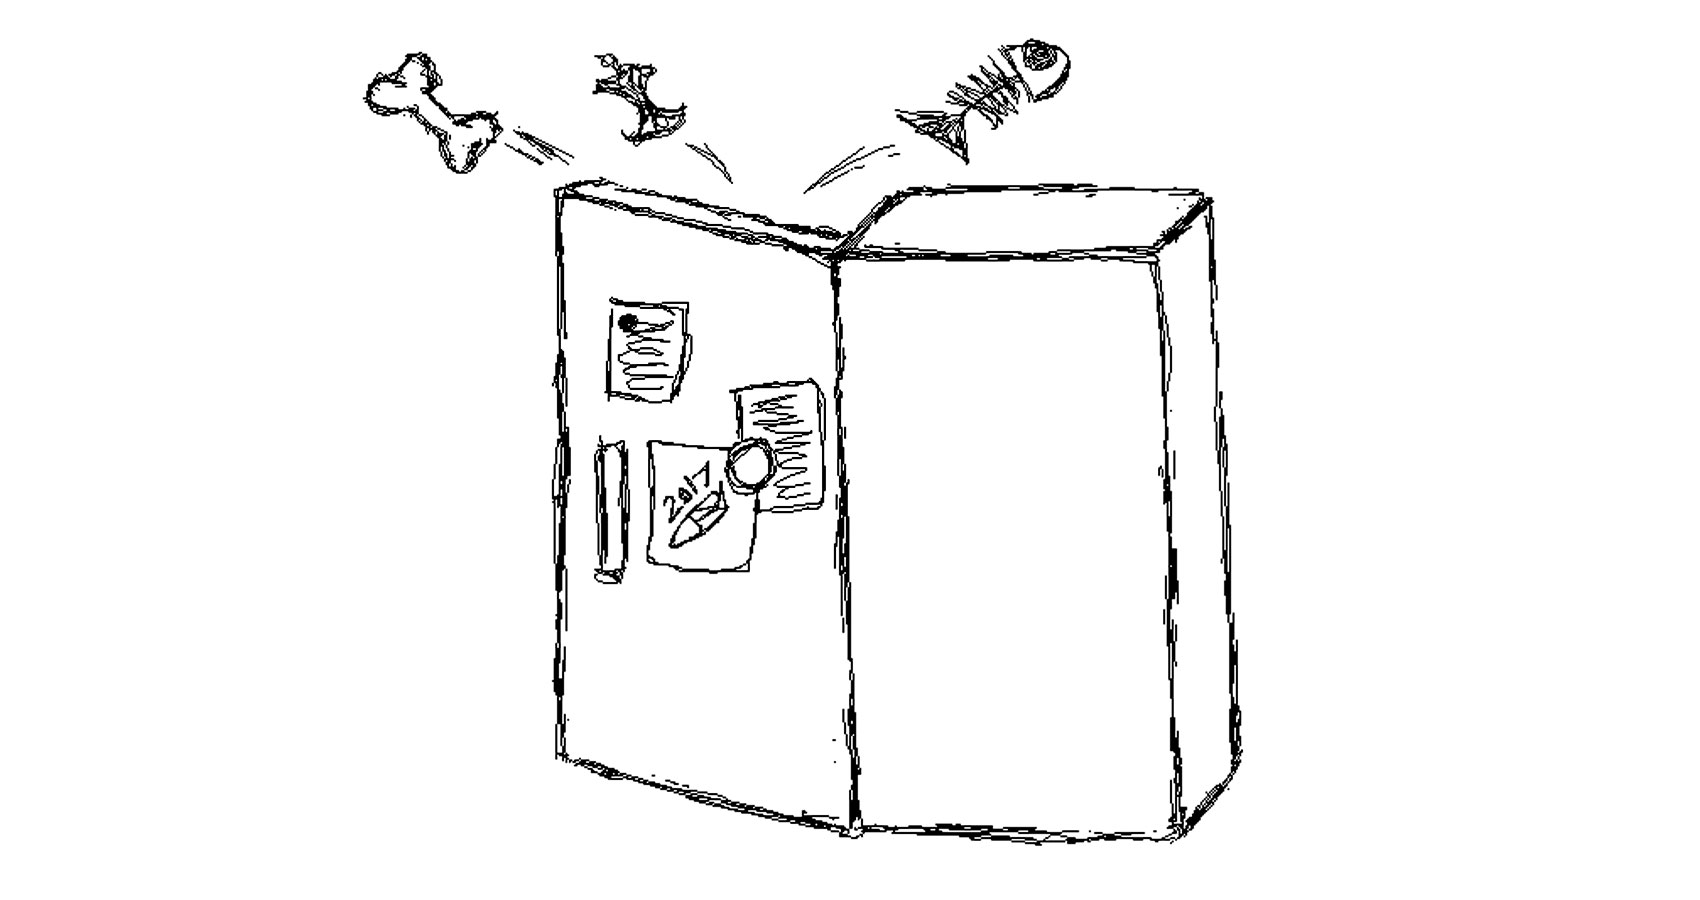 Free Range of the Fridge by Robyn MacKinnon at Spillwords.com